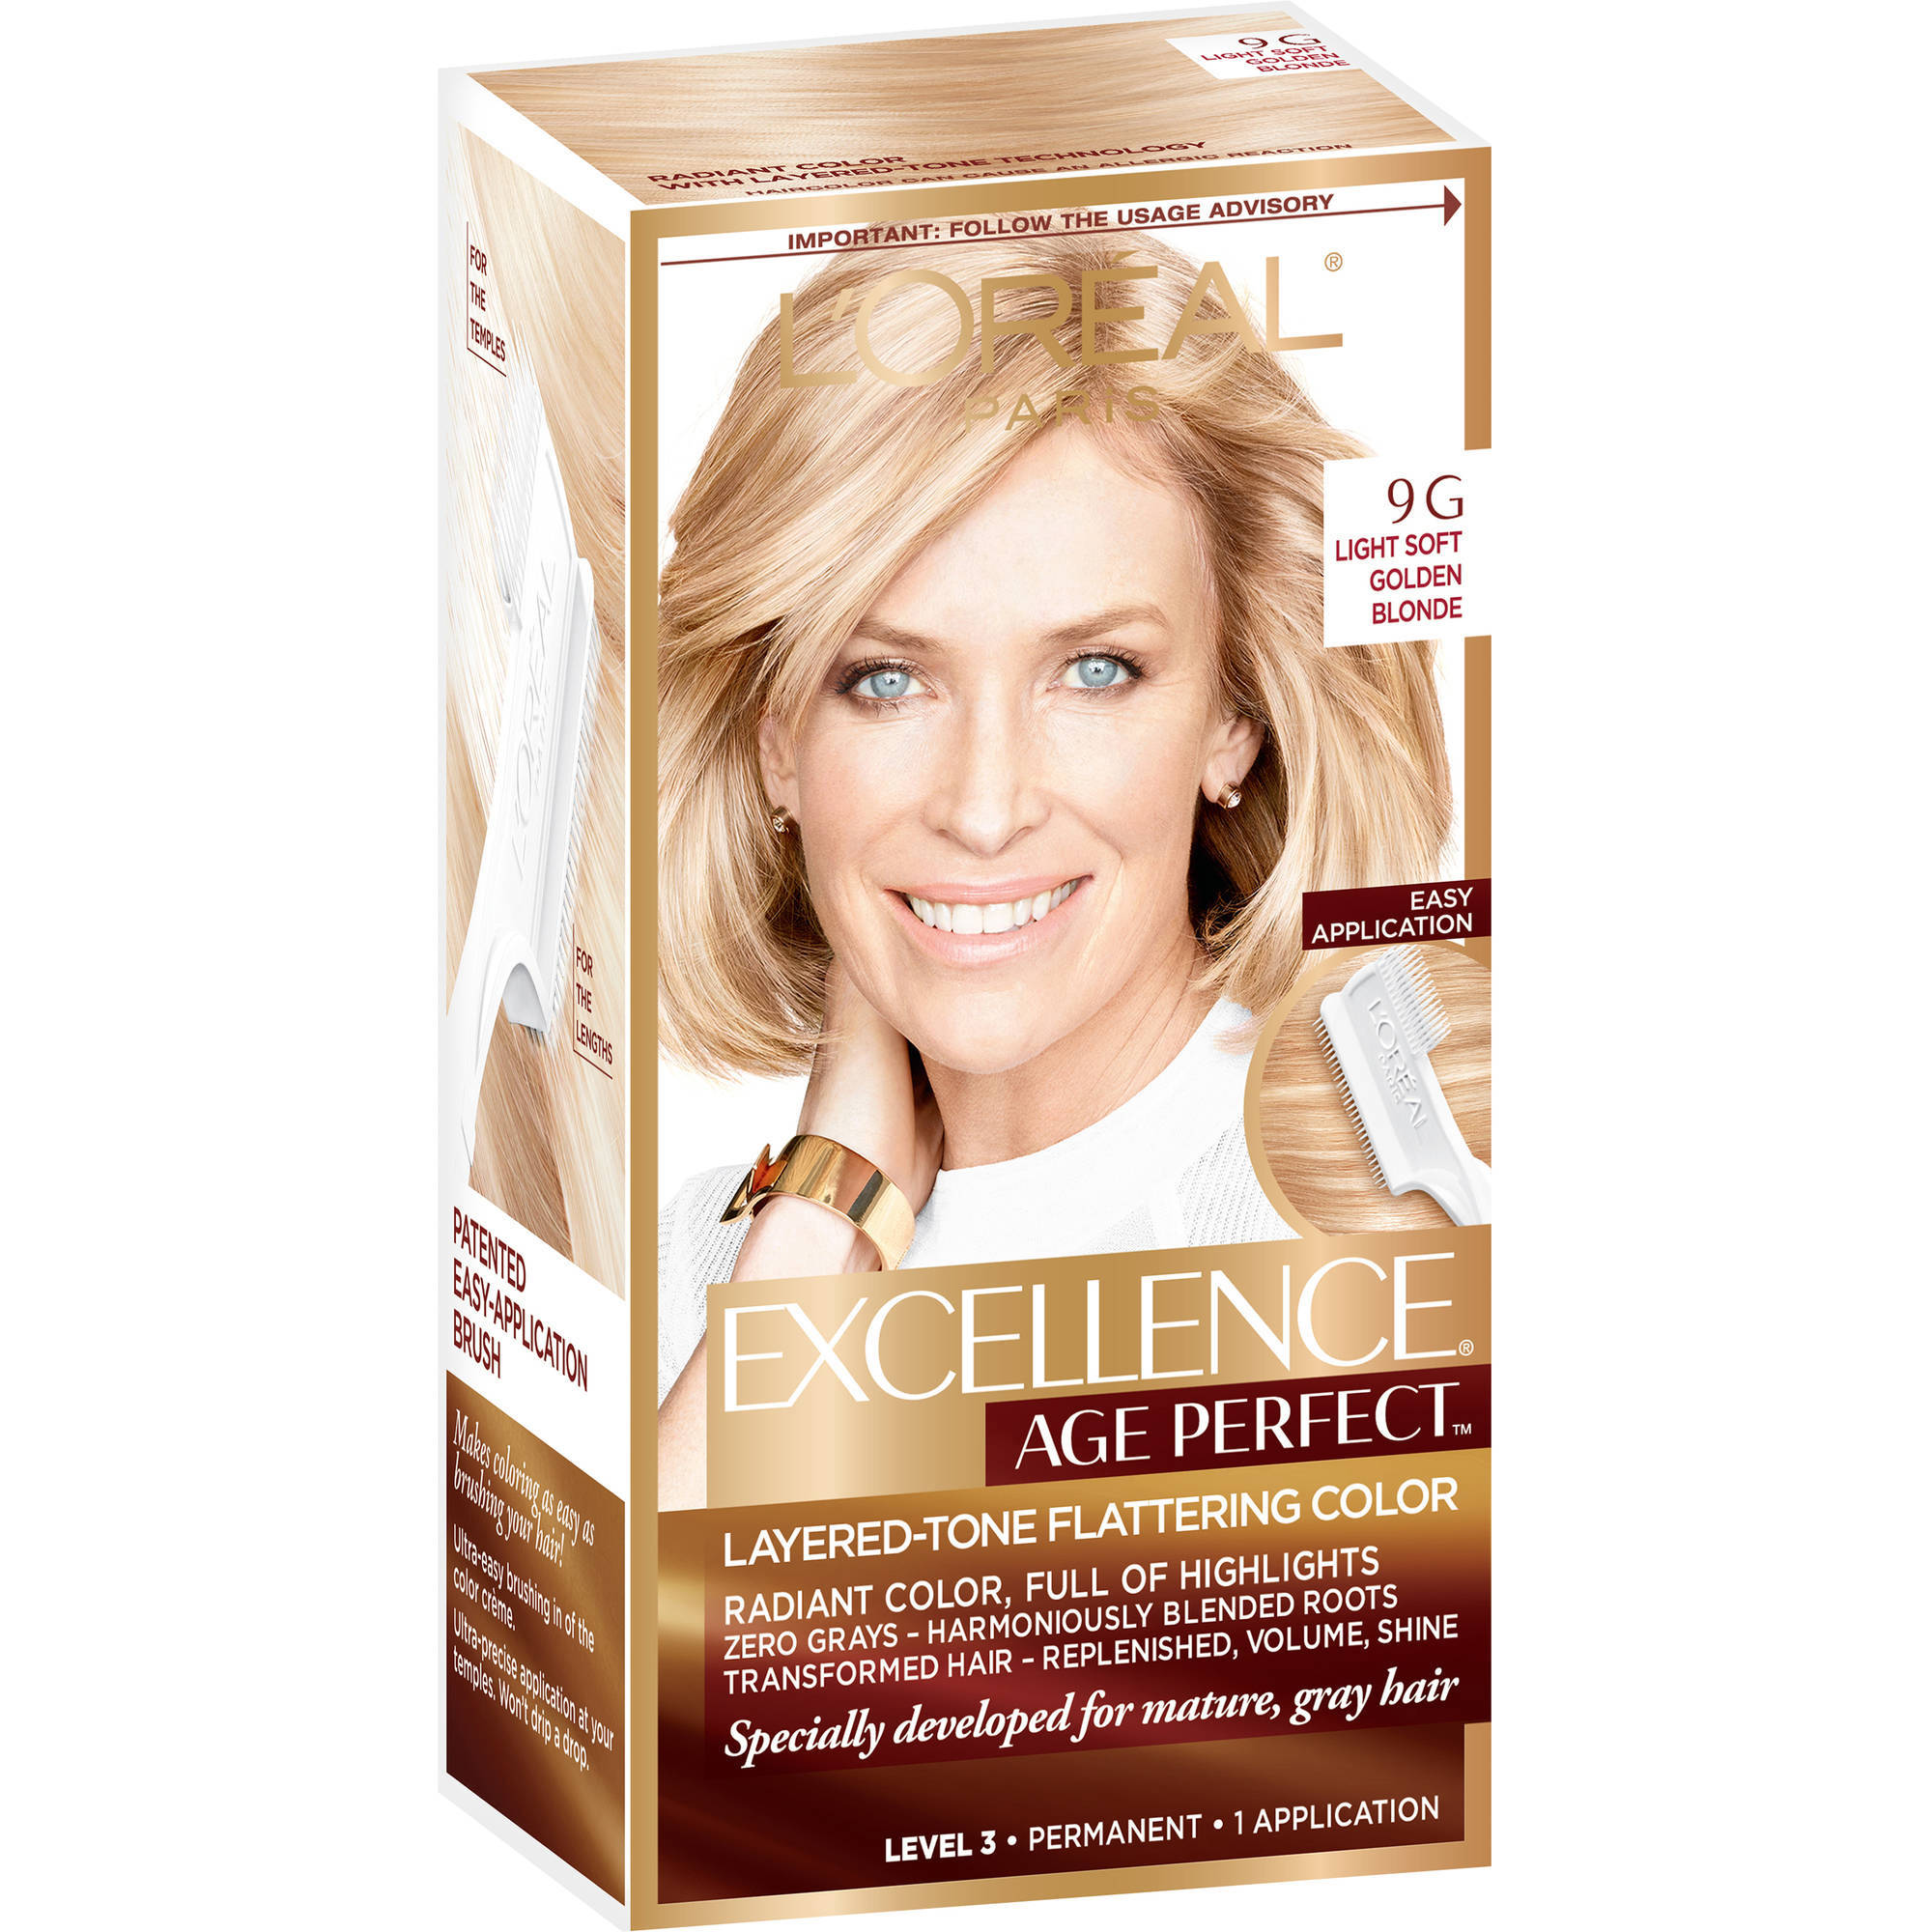 L'Oreal Paris Excellence Age Perfect Layered-Tone Hair Color